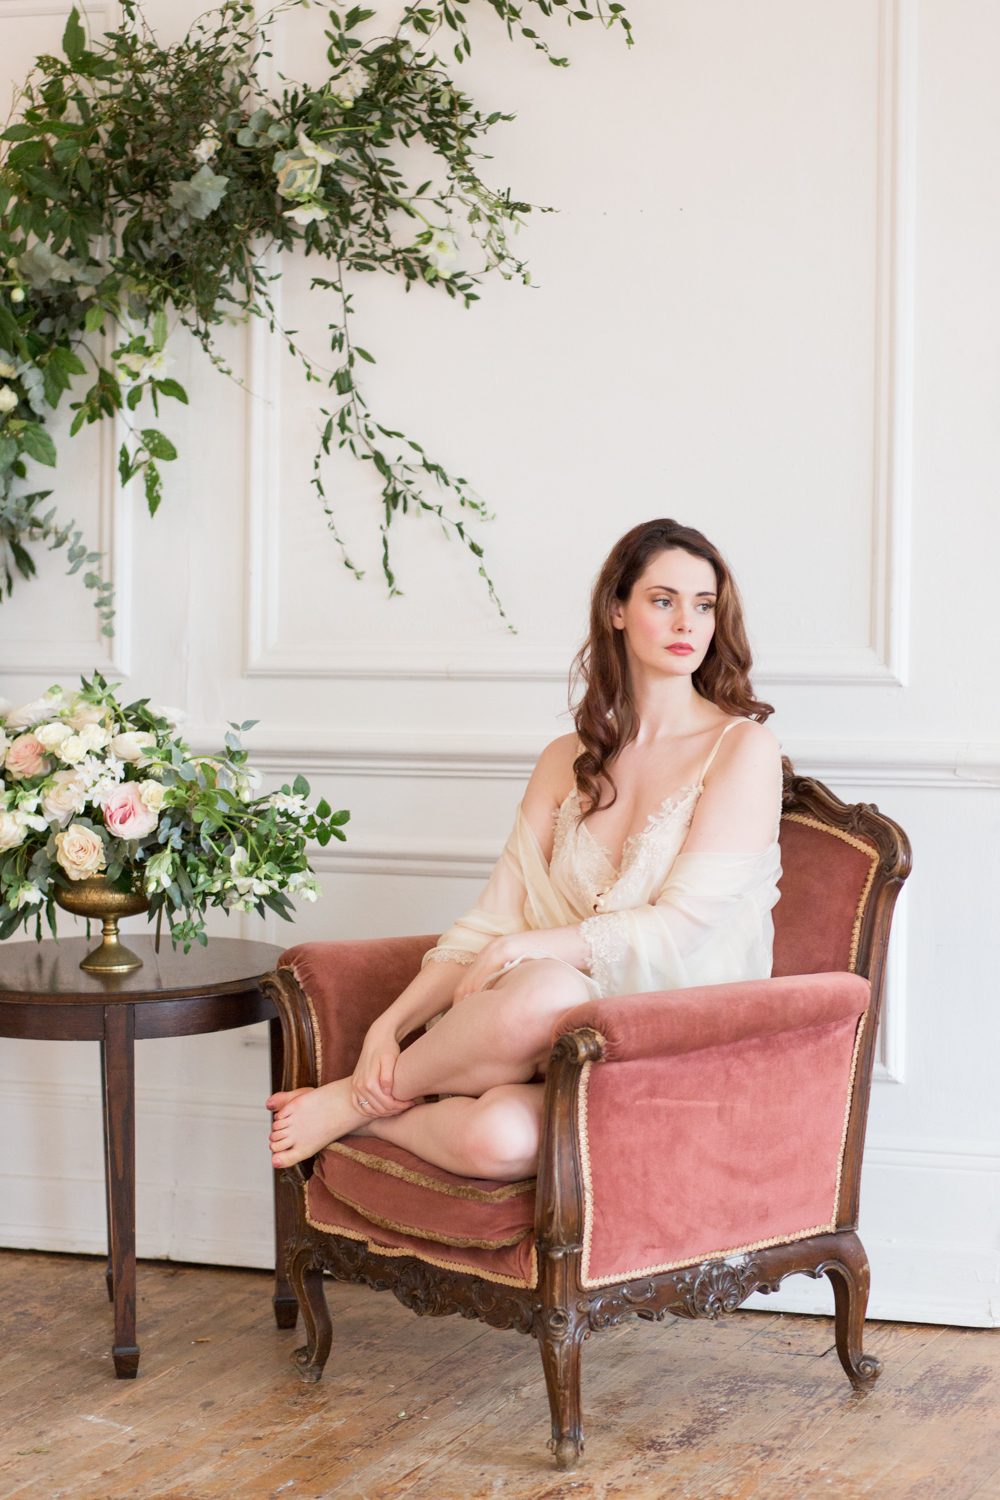 The Timeless Stylist-UK Wedding Styling-Elegant and Romantic Style Boudoir Shoot-Bridal Styling-Wedding Morning Prep